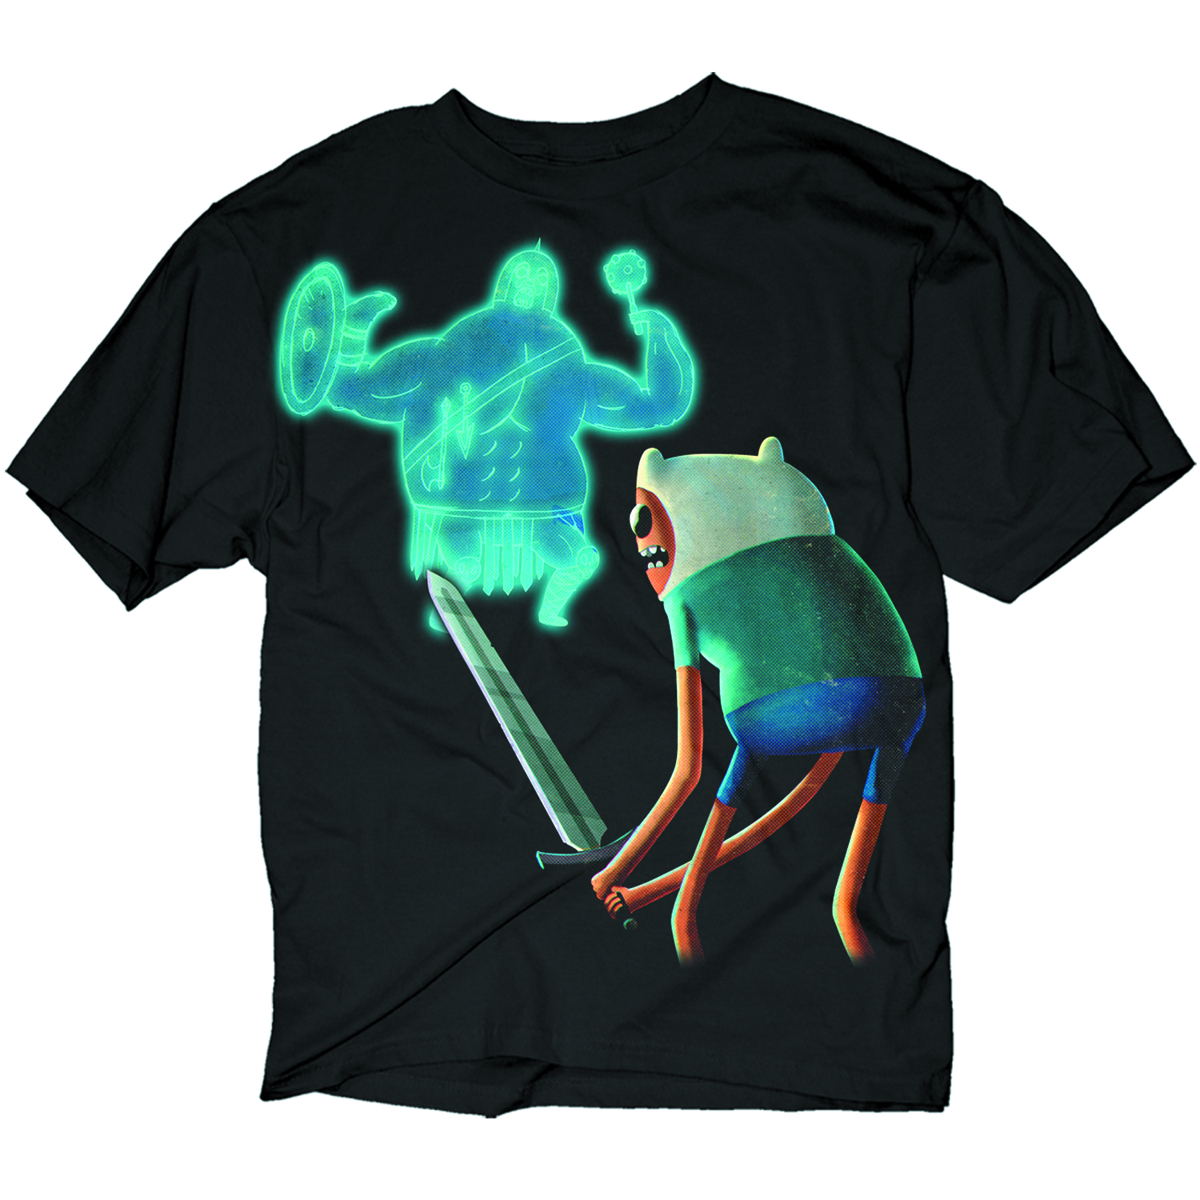 ADVENTURE TIME FINN VS GLADIATOR PX BLK T/S MED